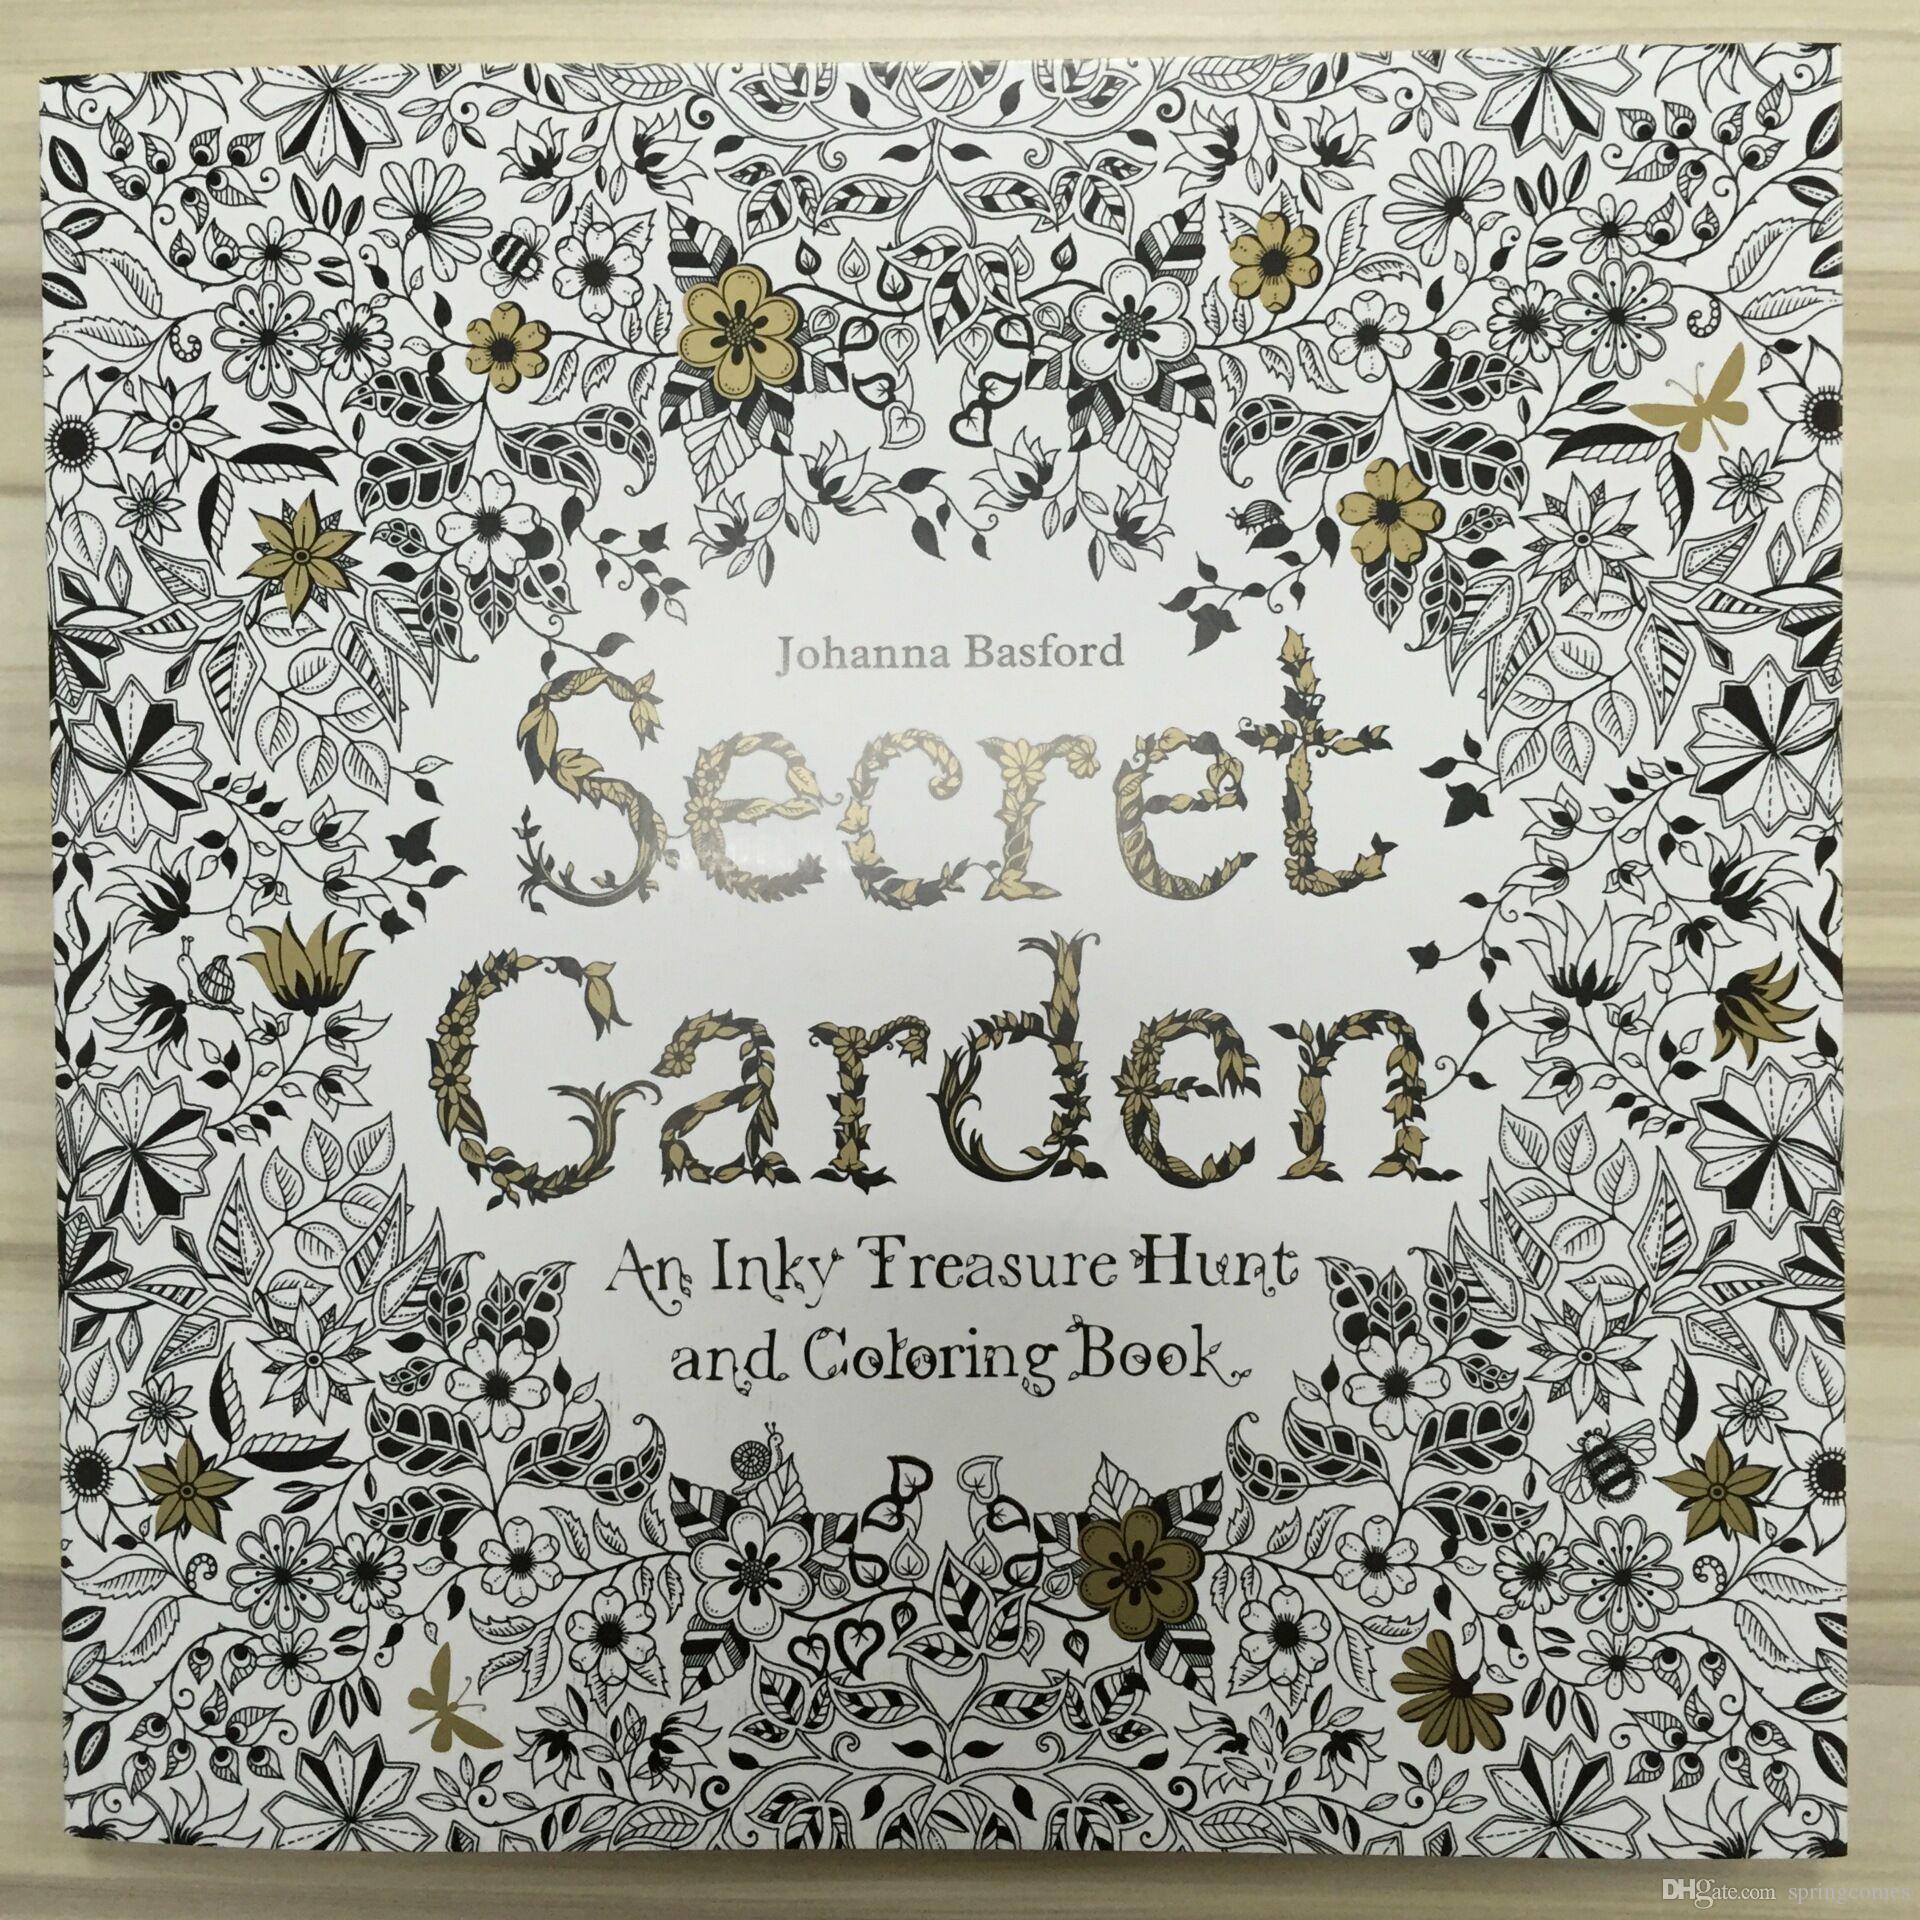 2017 Secret Garden Colouring Book An Inky Treasure Hunt For Adult